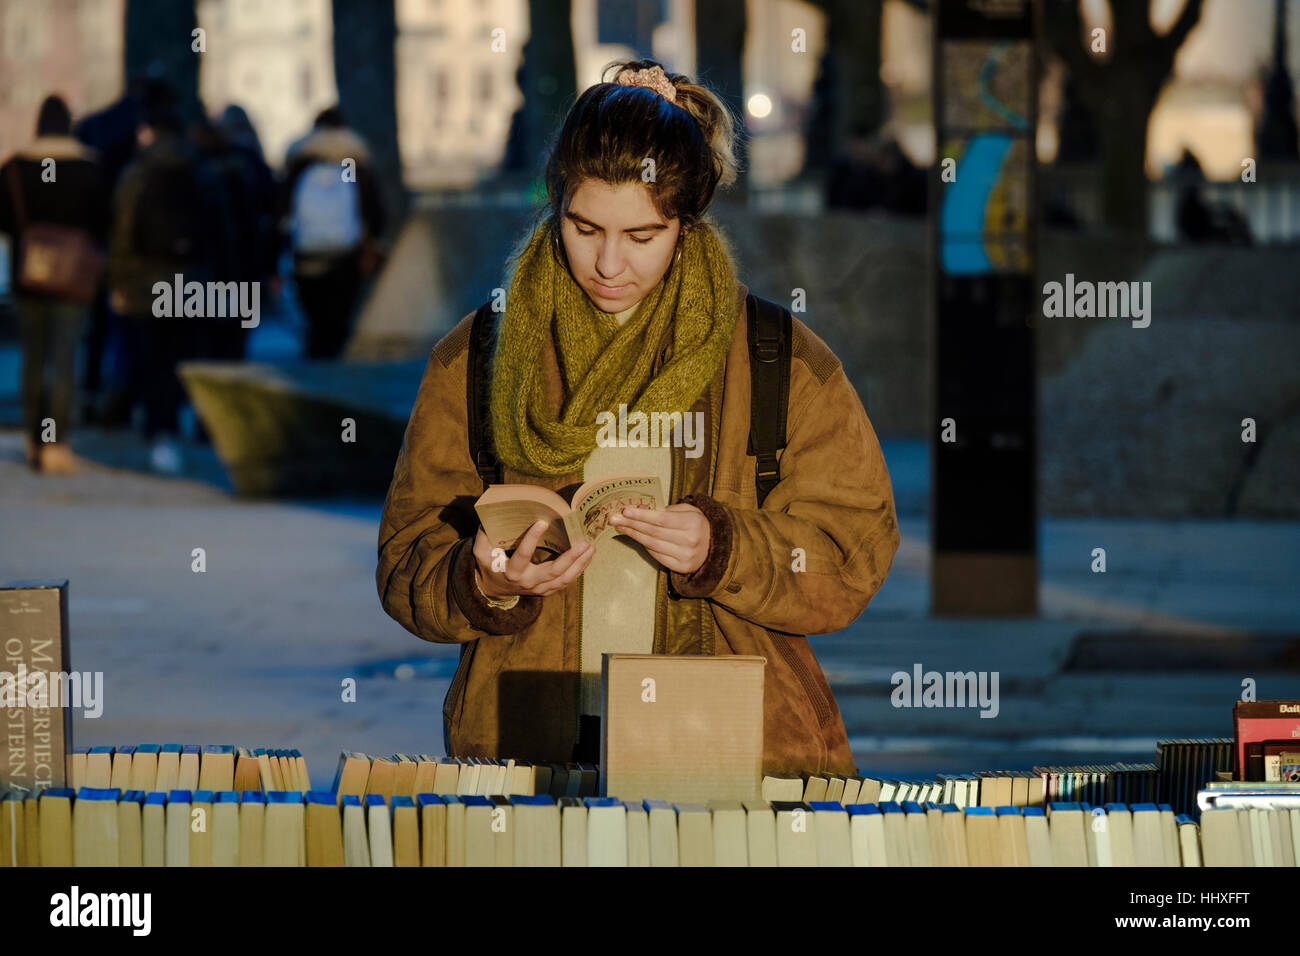 Young woman at second-hand bookstall beneath Waterloo Bridge, South Bank, London, UK - Stock Image